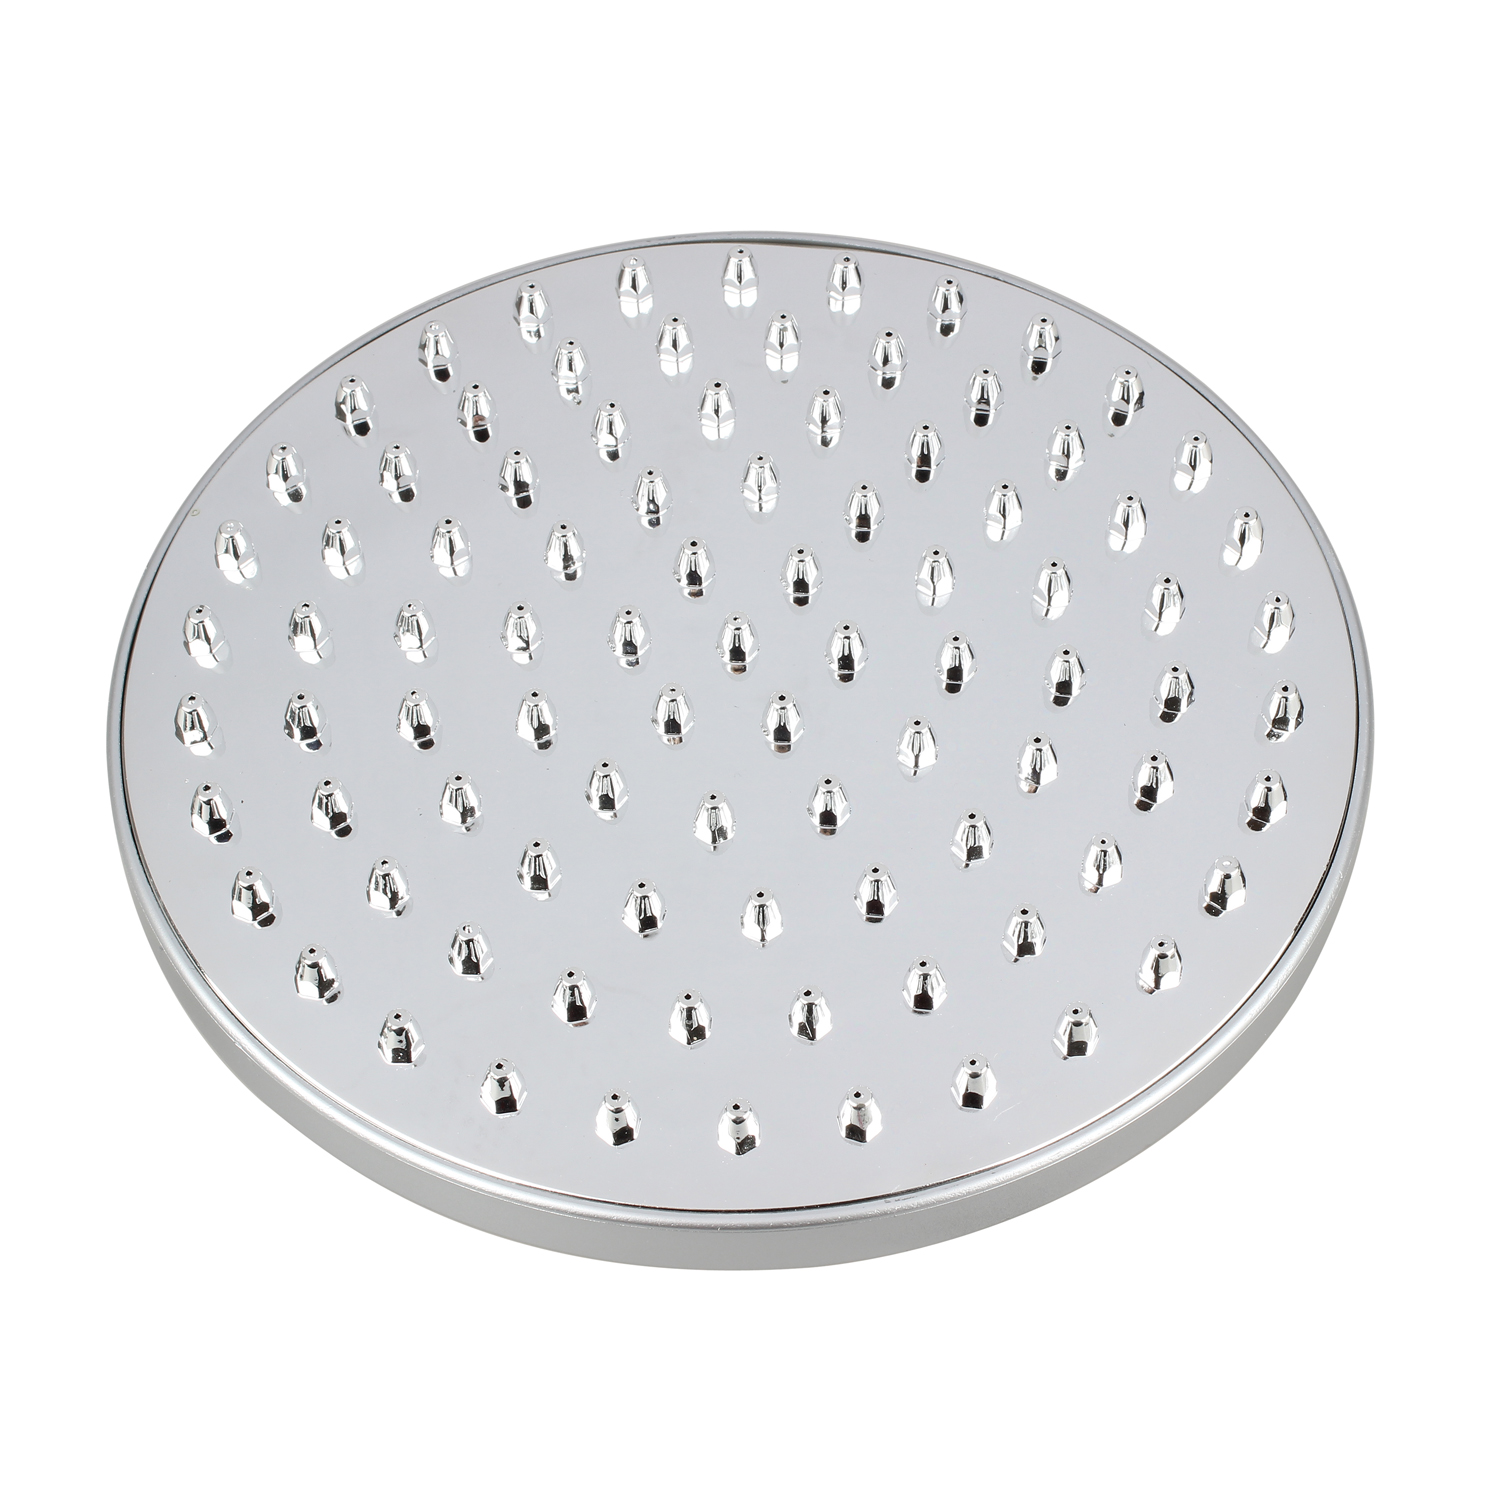 Promotion! UK Send 8 Inch Bathroom Room Chrome Large Round Mixer Fix Rain Shower Head 200mm